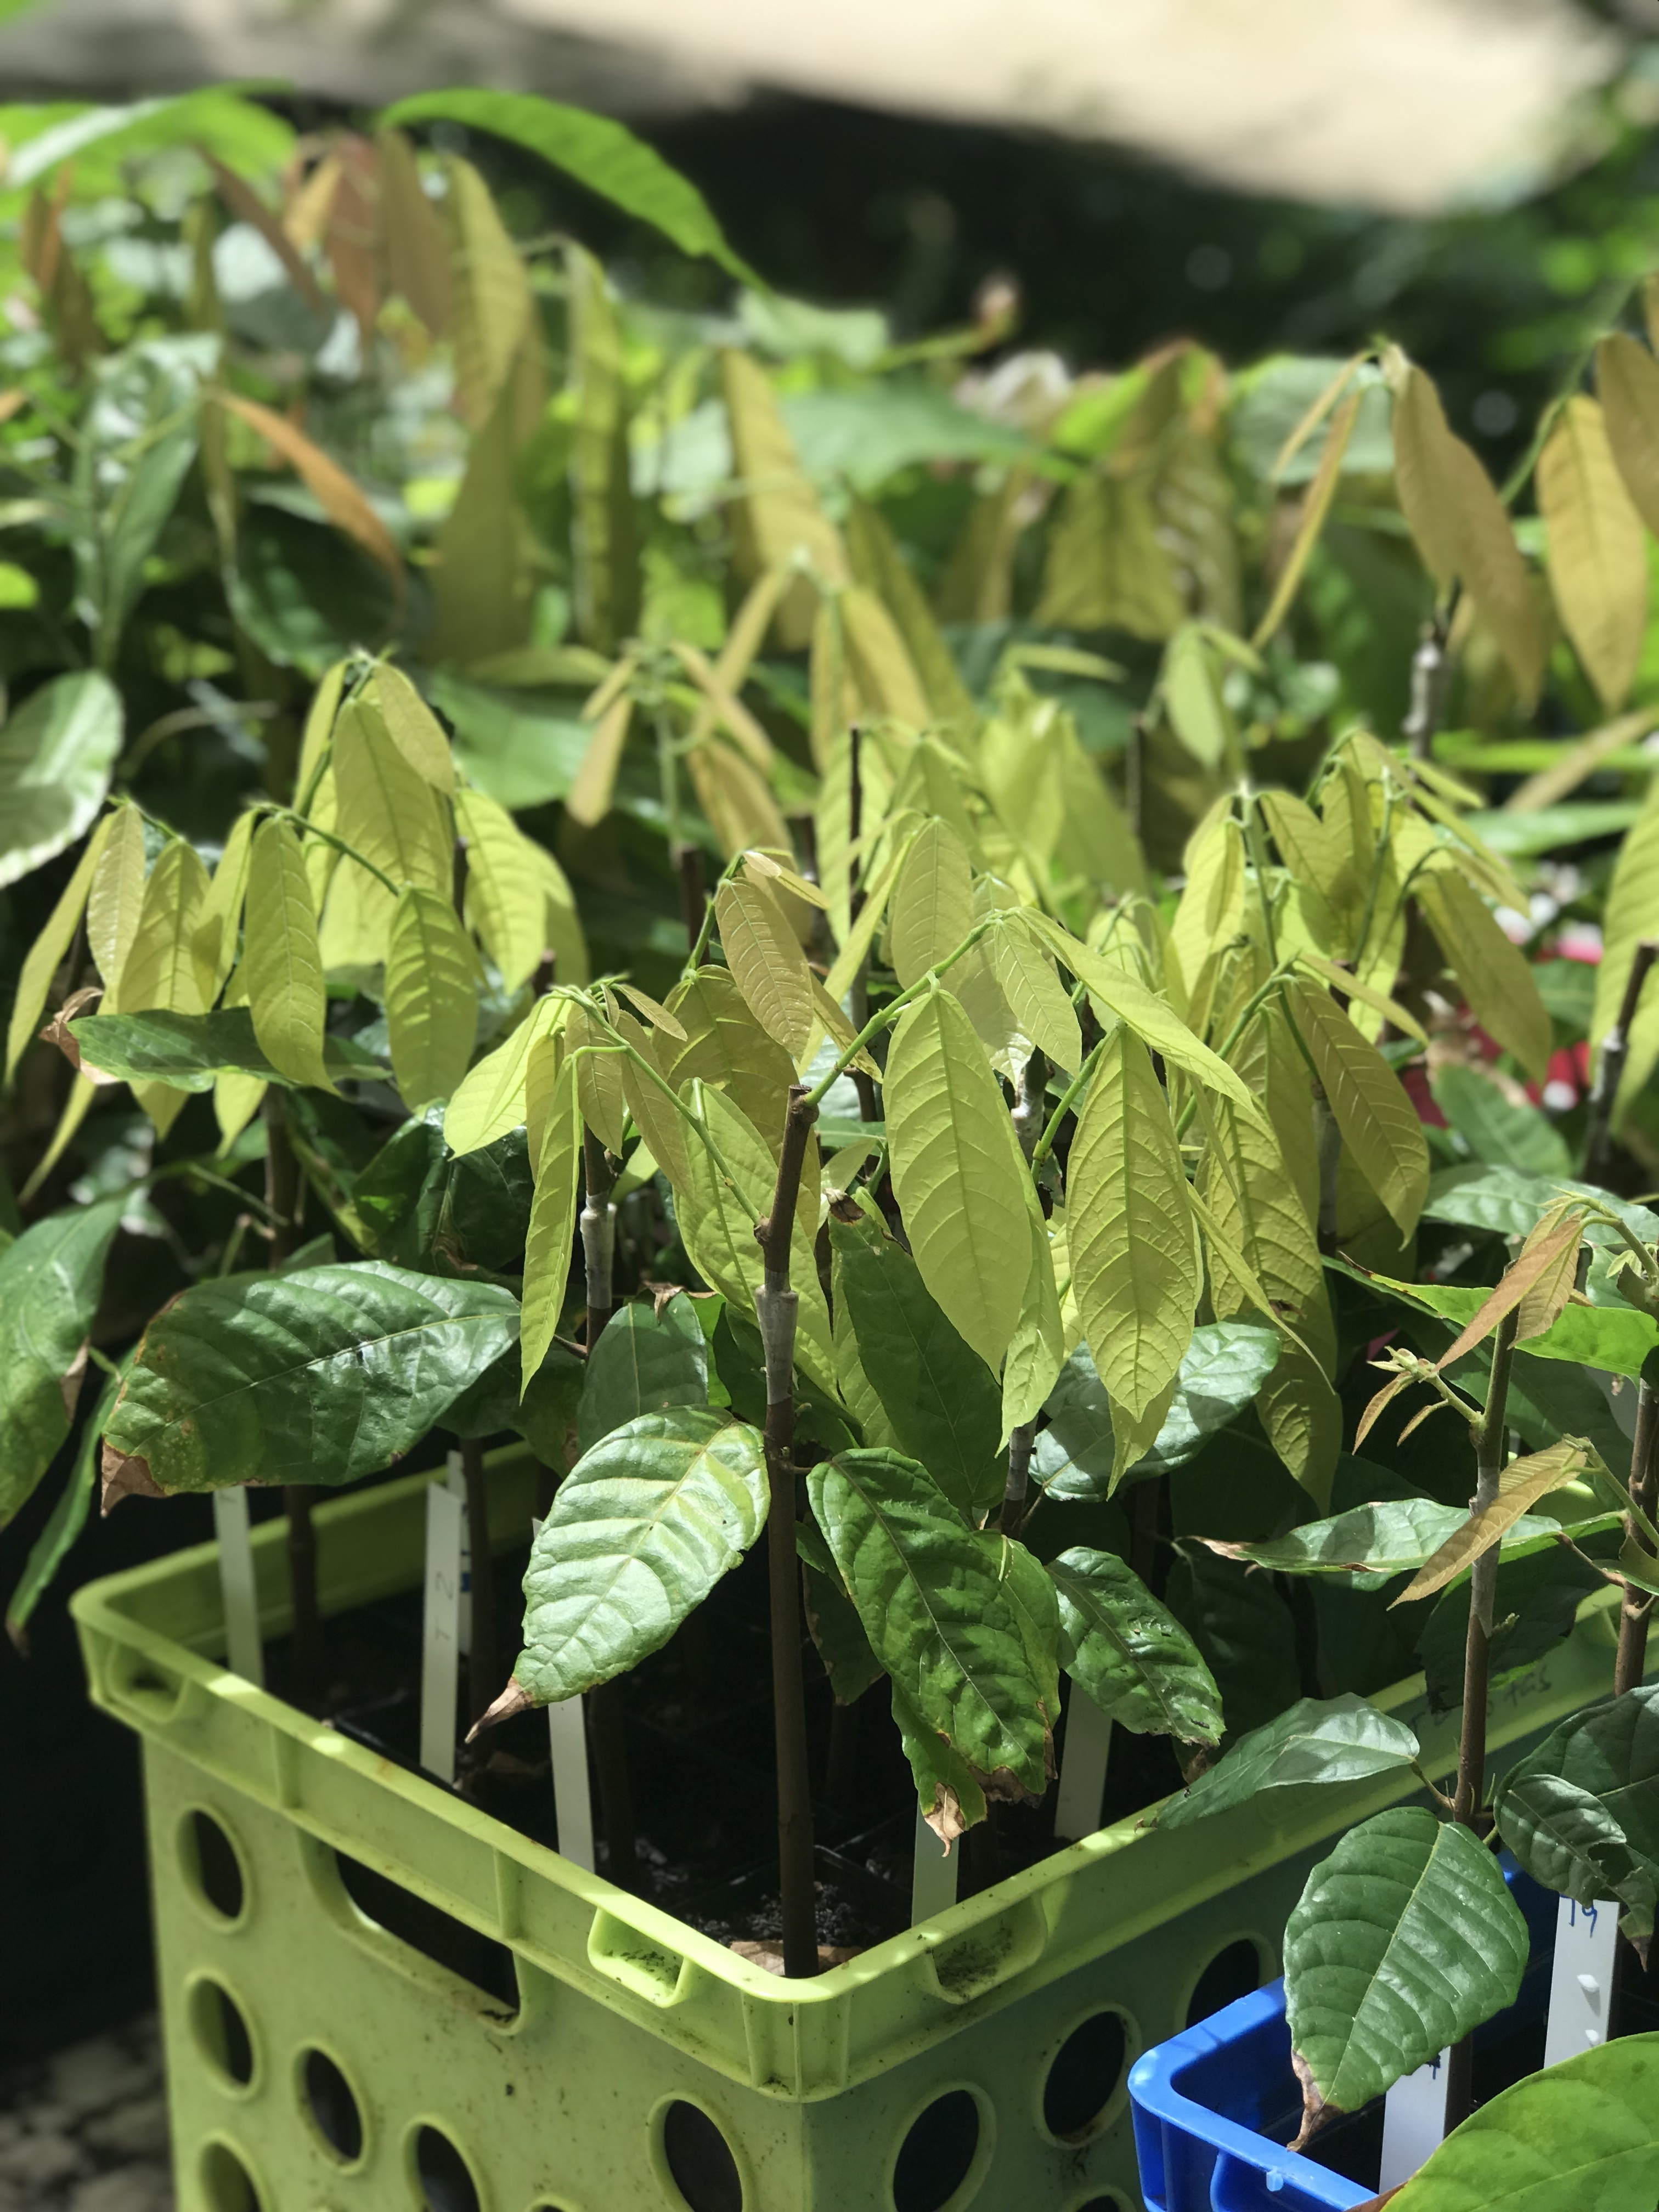 Close up of grafted cacao tree seedlings in crates ready for planting